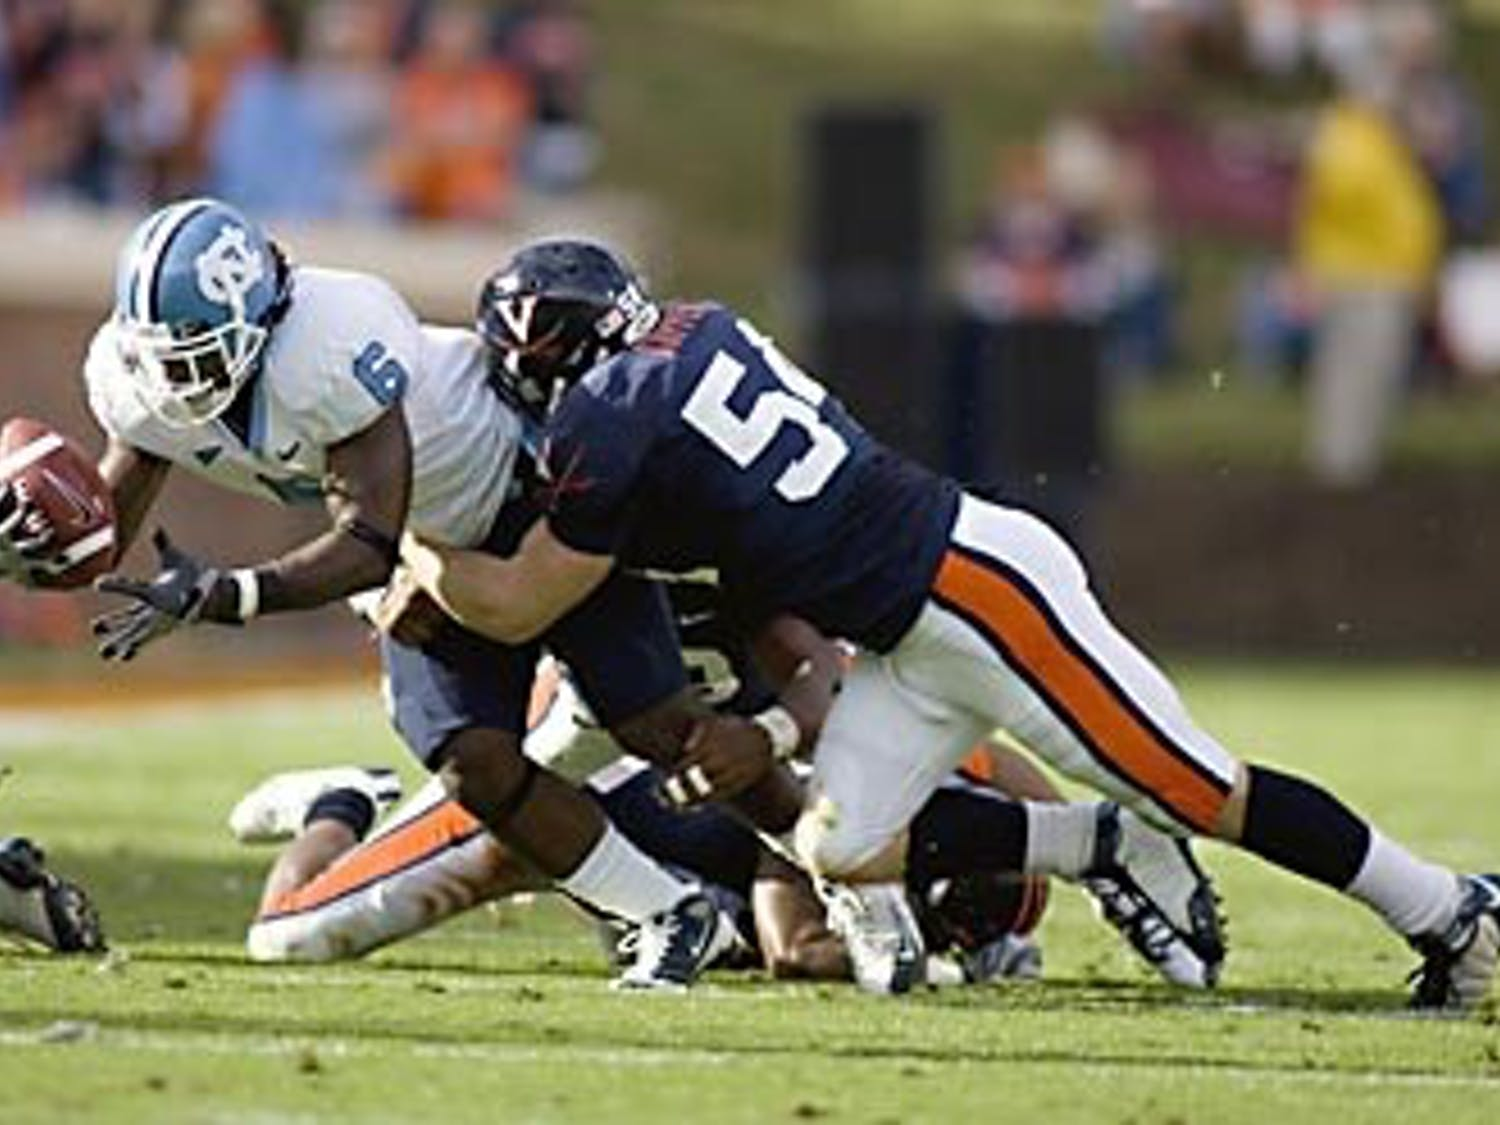 Though Anthony Elzy and the running game excelled on UNC?s side of the field the Tar Heel offense struggled inside the Virginia 40.